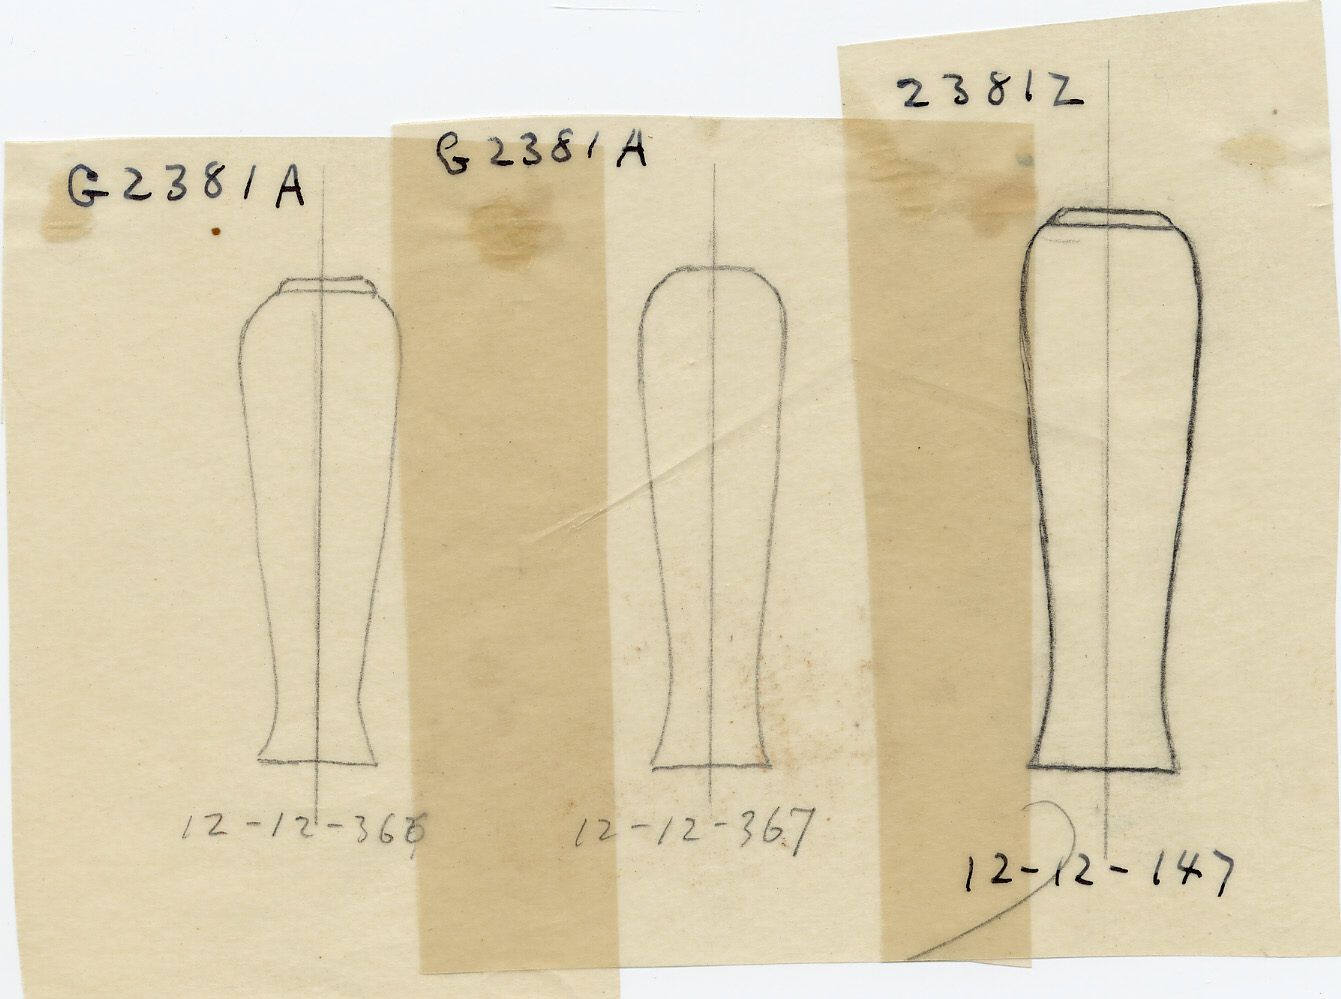 Drawings: G 2381: model jars, copper